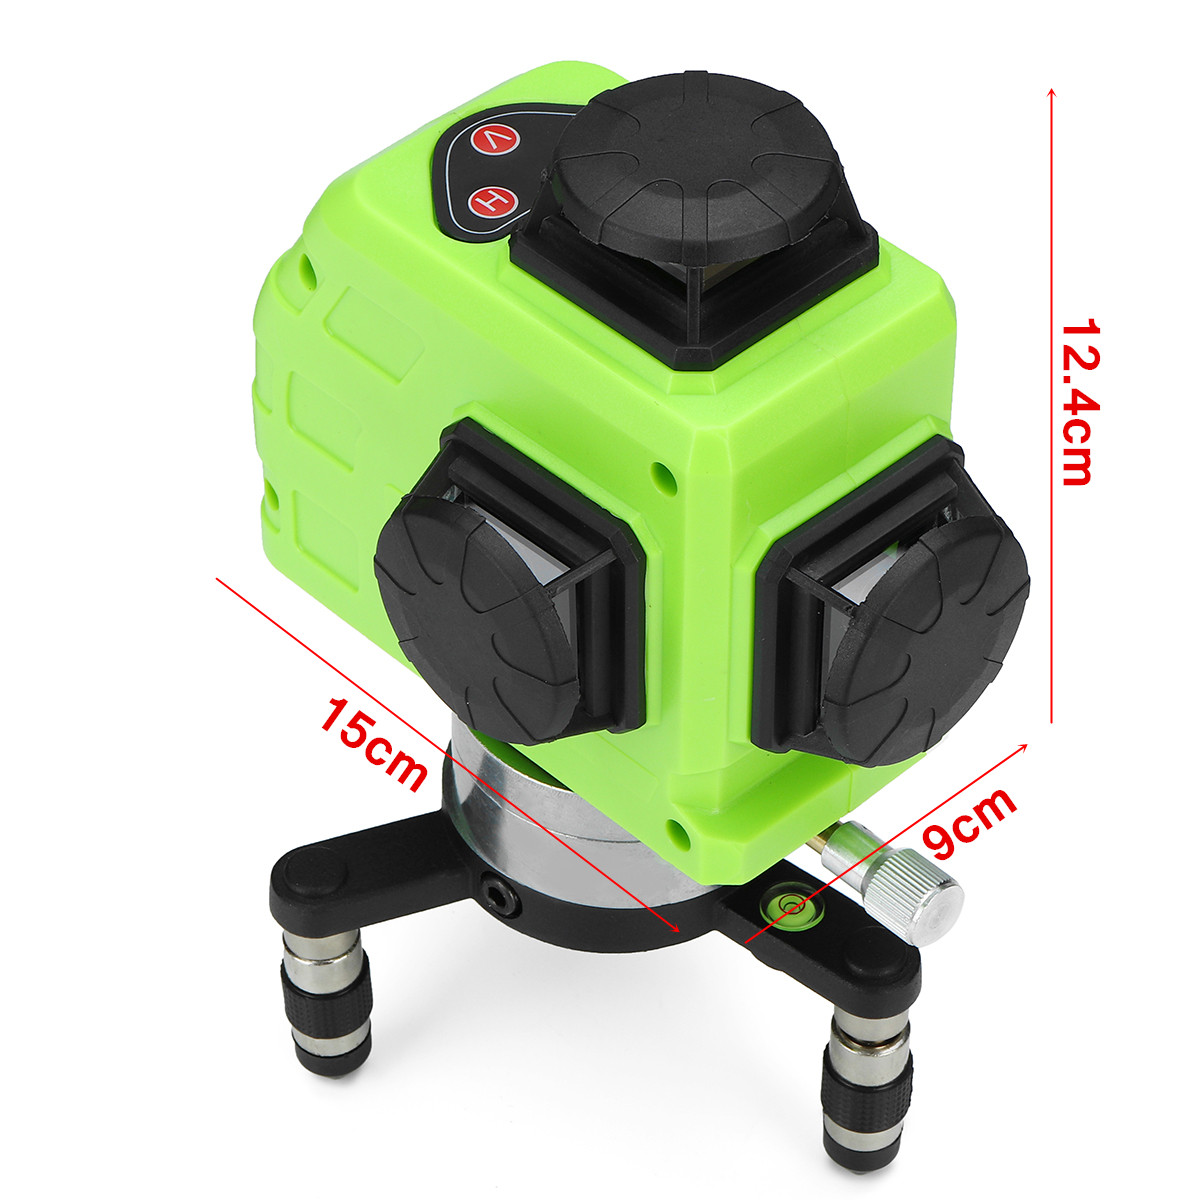 360° Rotary Laser Level Self Leveling 3D 12 Line Green Measuring Tool with Tripod